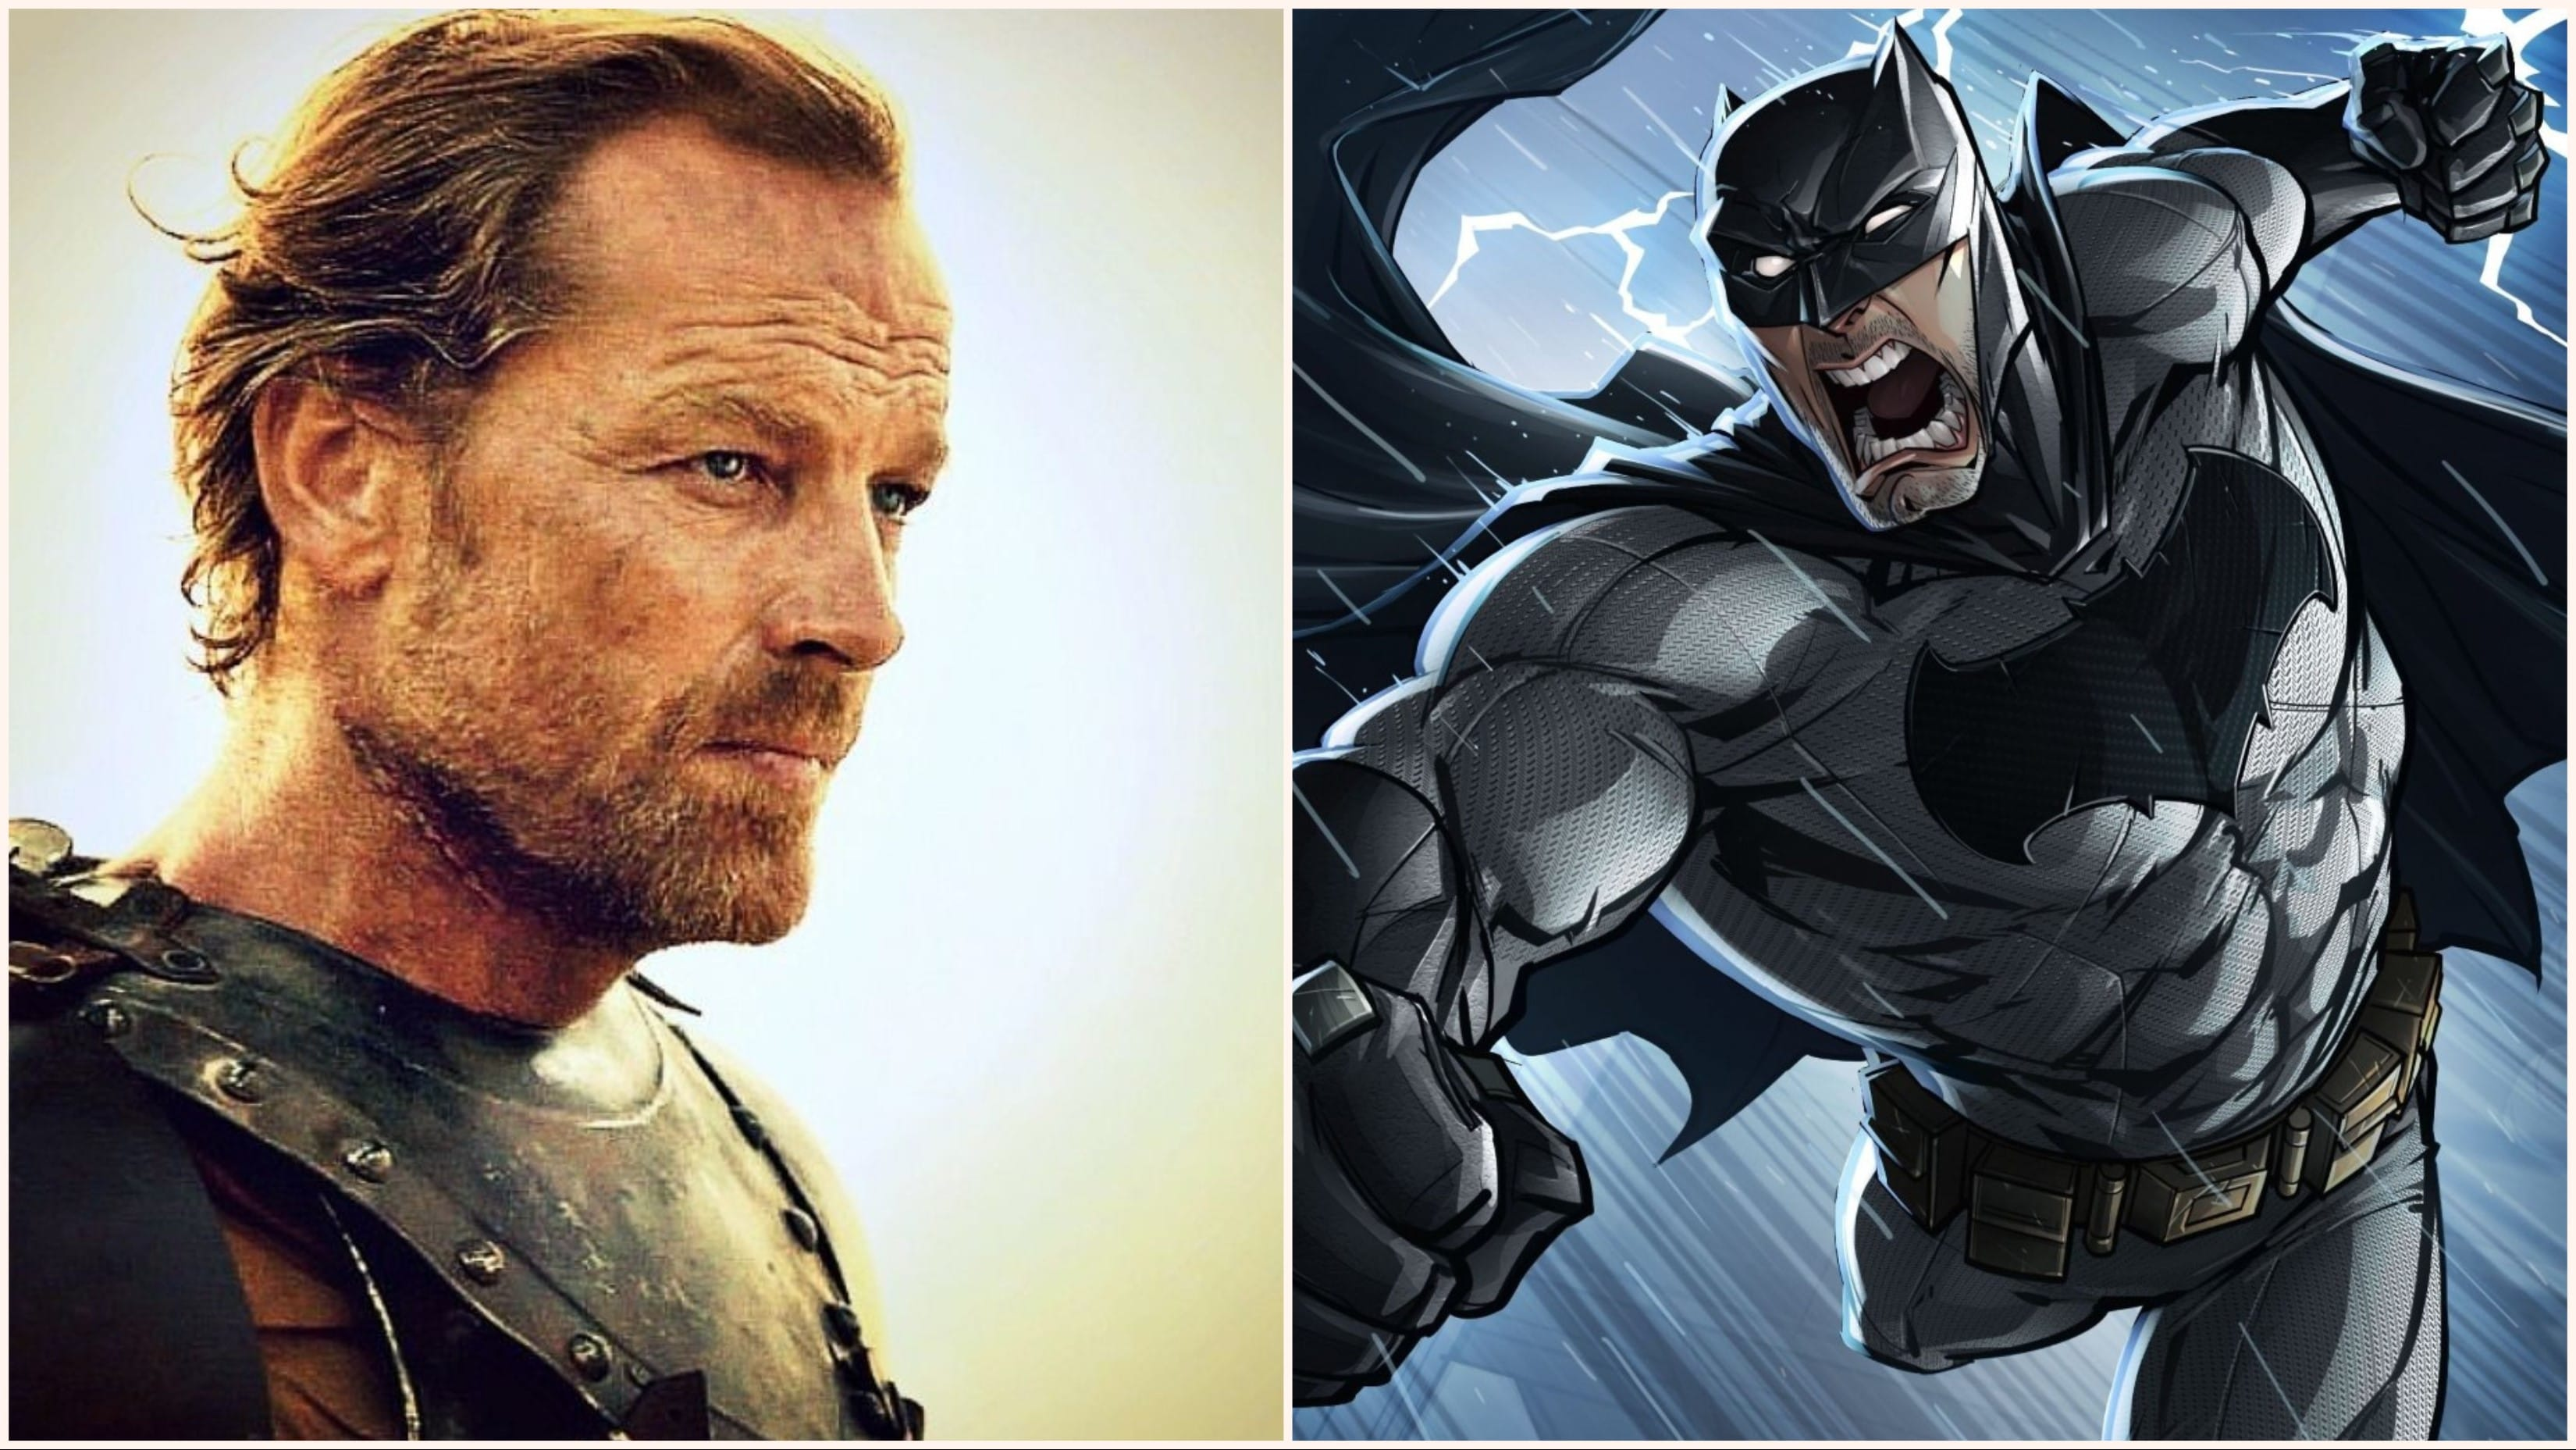 'Game Of Thrones' Star Cast As Batman In 'Titans'